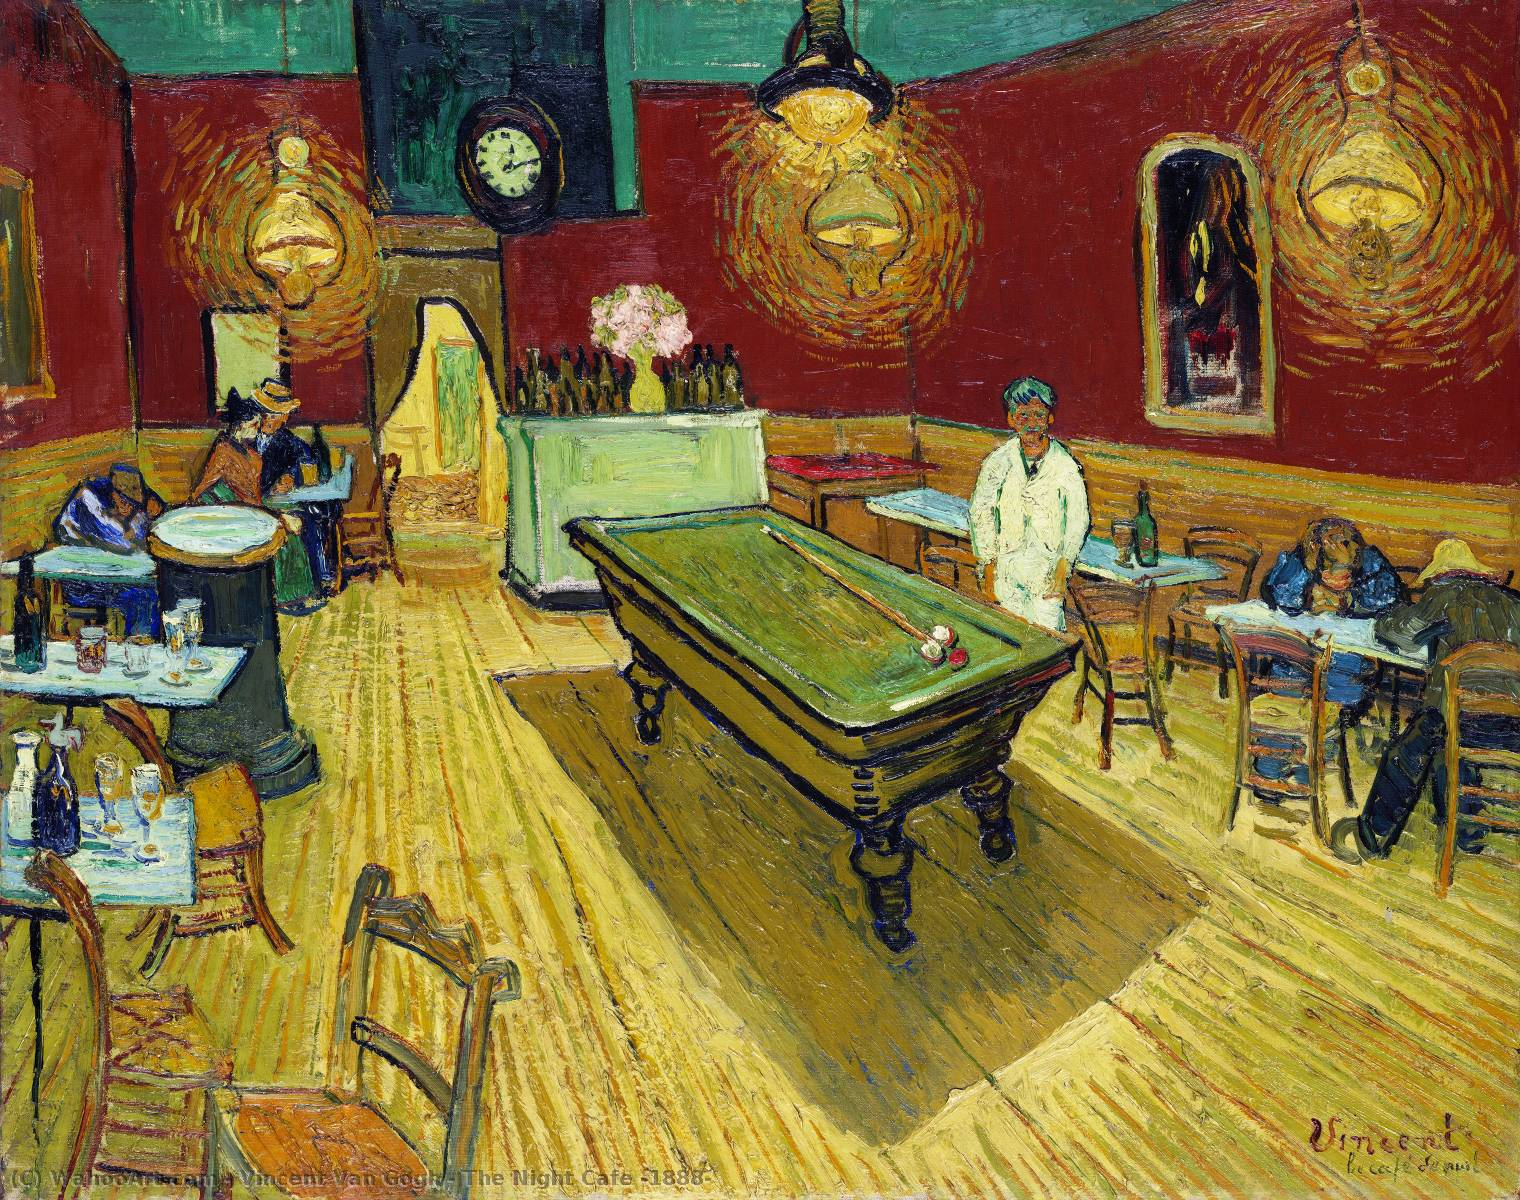 Order Museum Quality Copies | The Night Cafe by Vincent Van Gogh | Most-Famous-Paintings.com